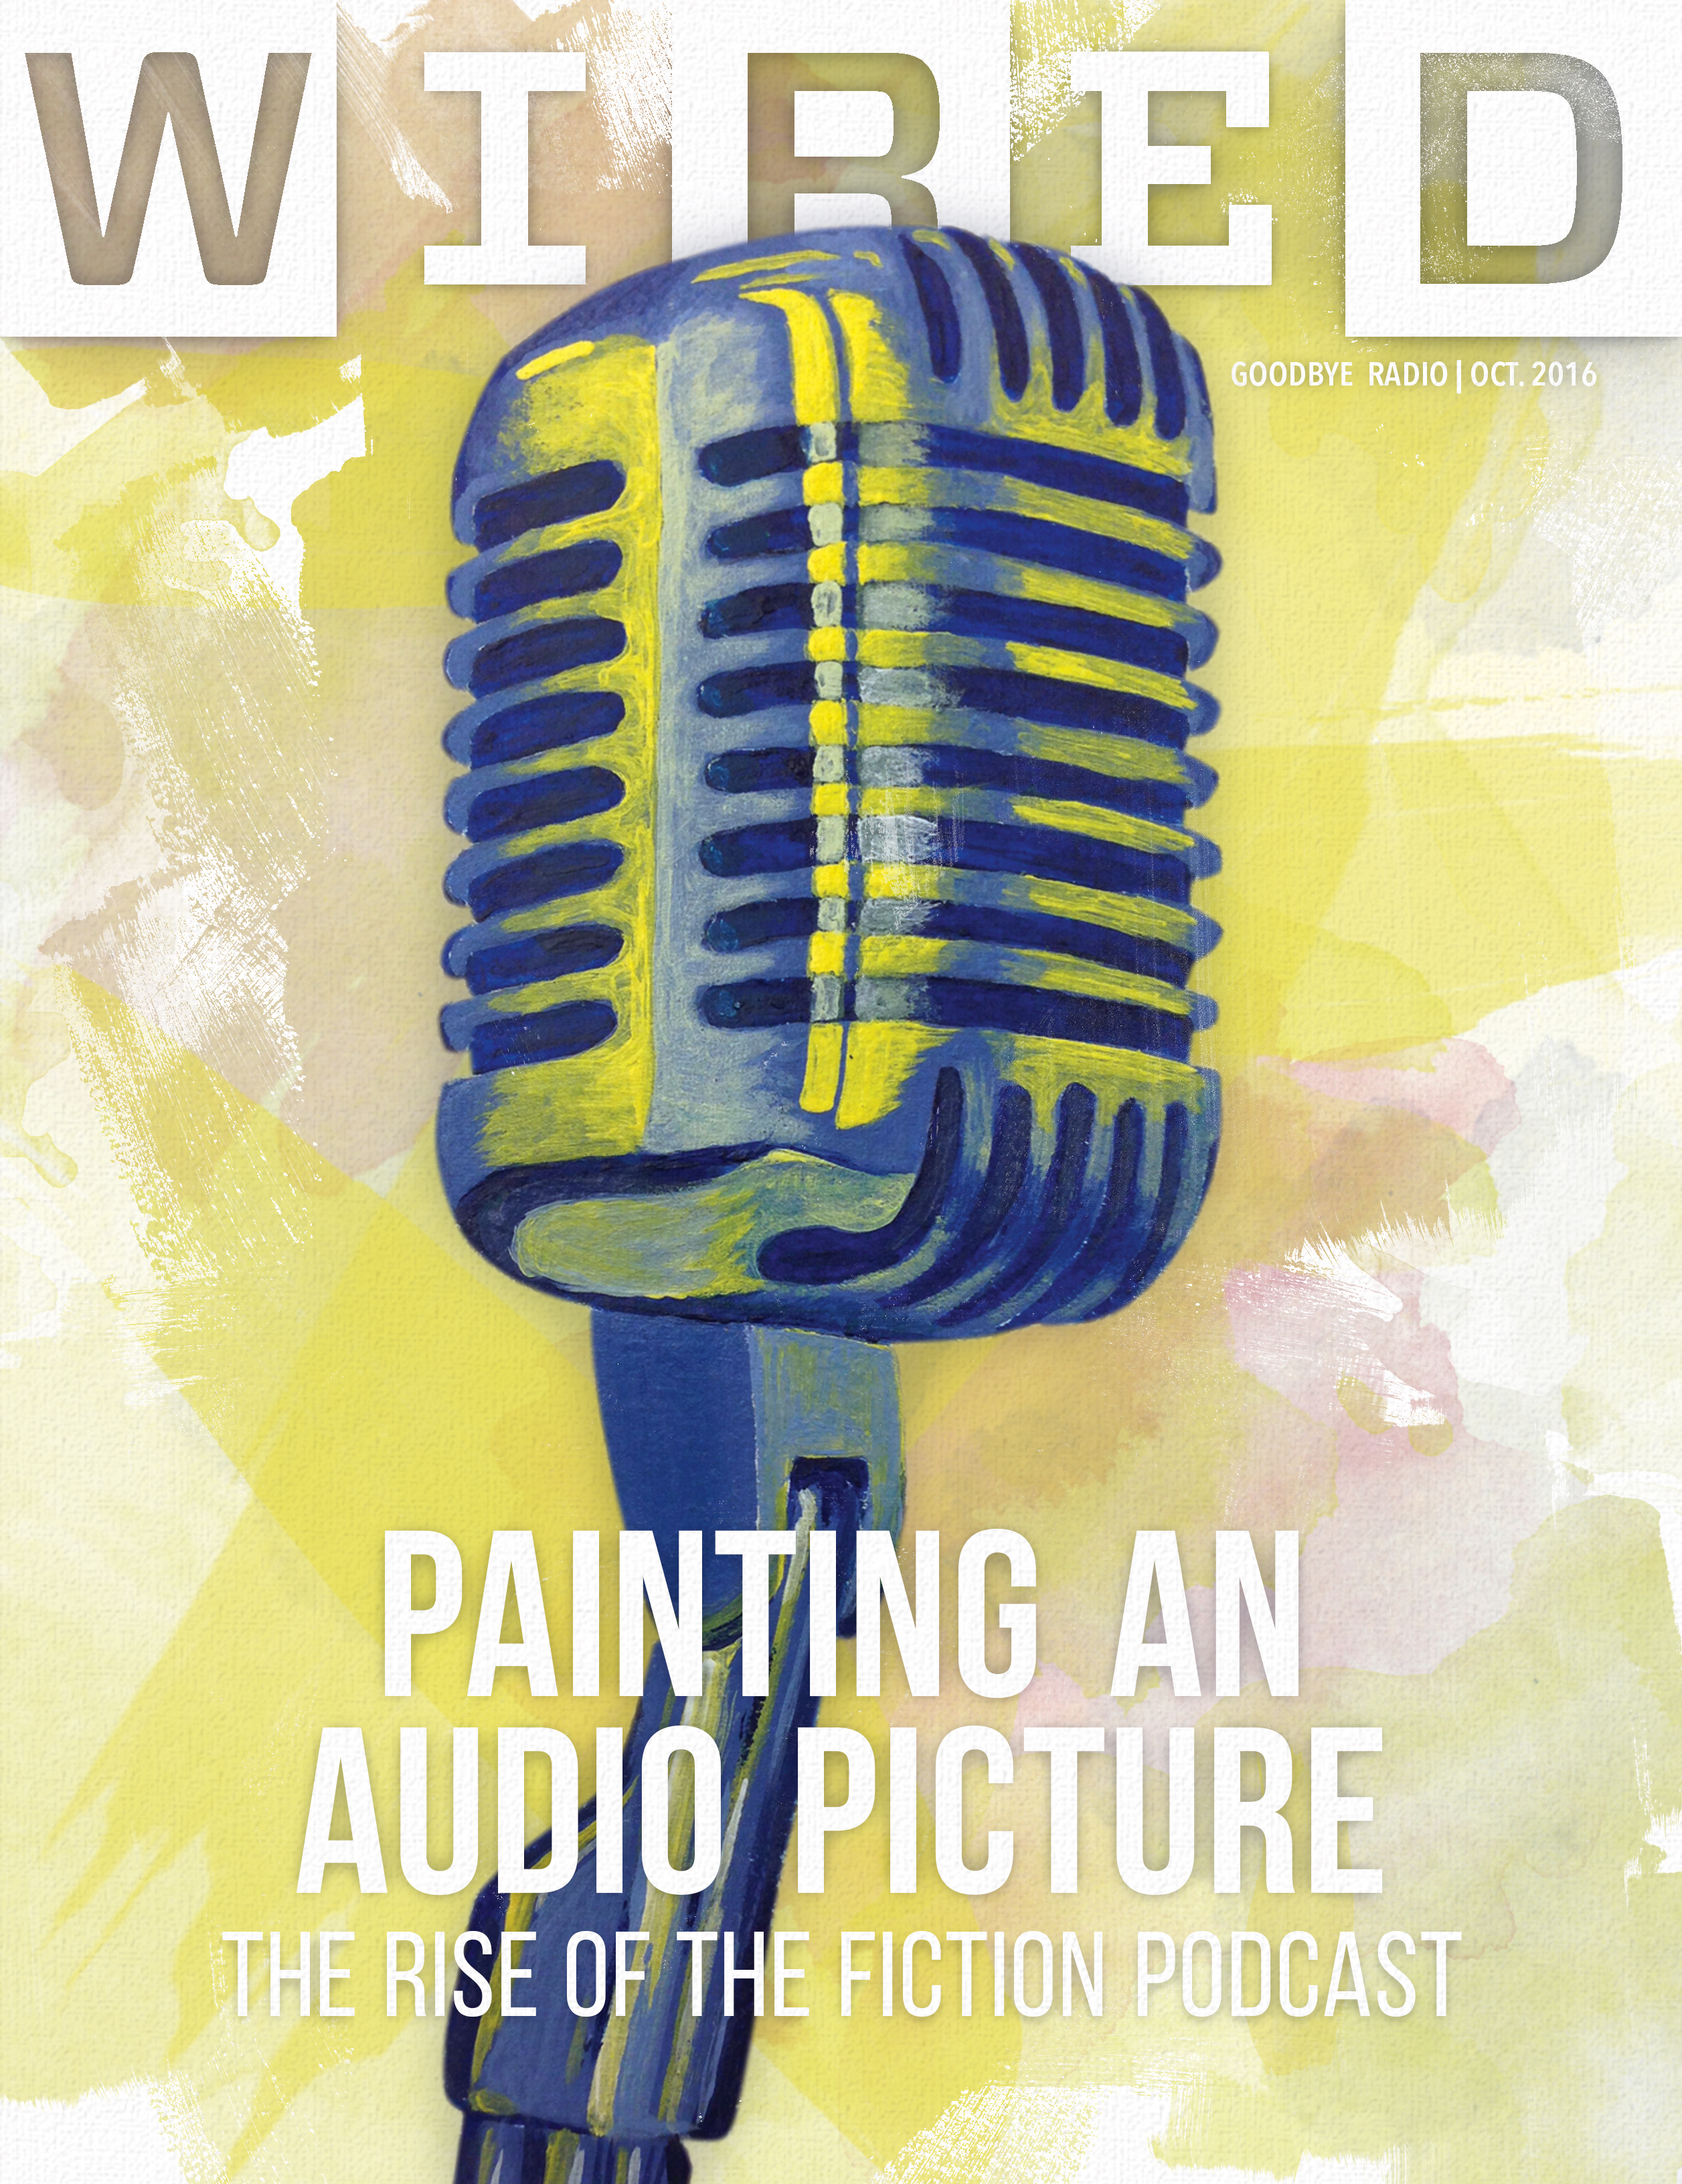 Wired Magazine Cover - Podcasting<div style='clear:both;width:100%;height:0px;'></div><span class='desc'>Created for a magazine design class using Photoshop and traditional acrylic paint for the microphone.</span>